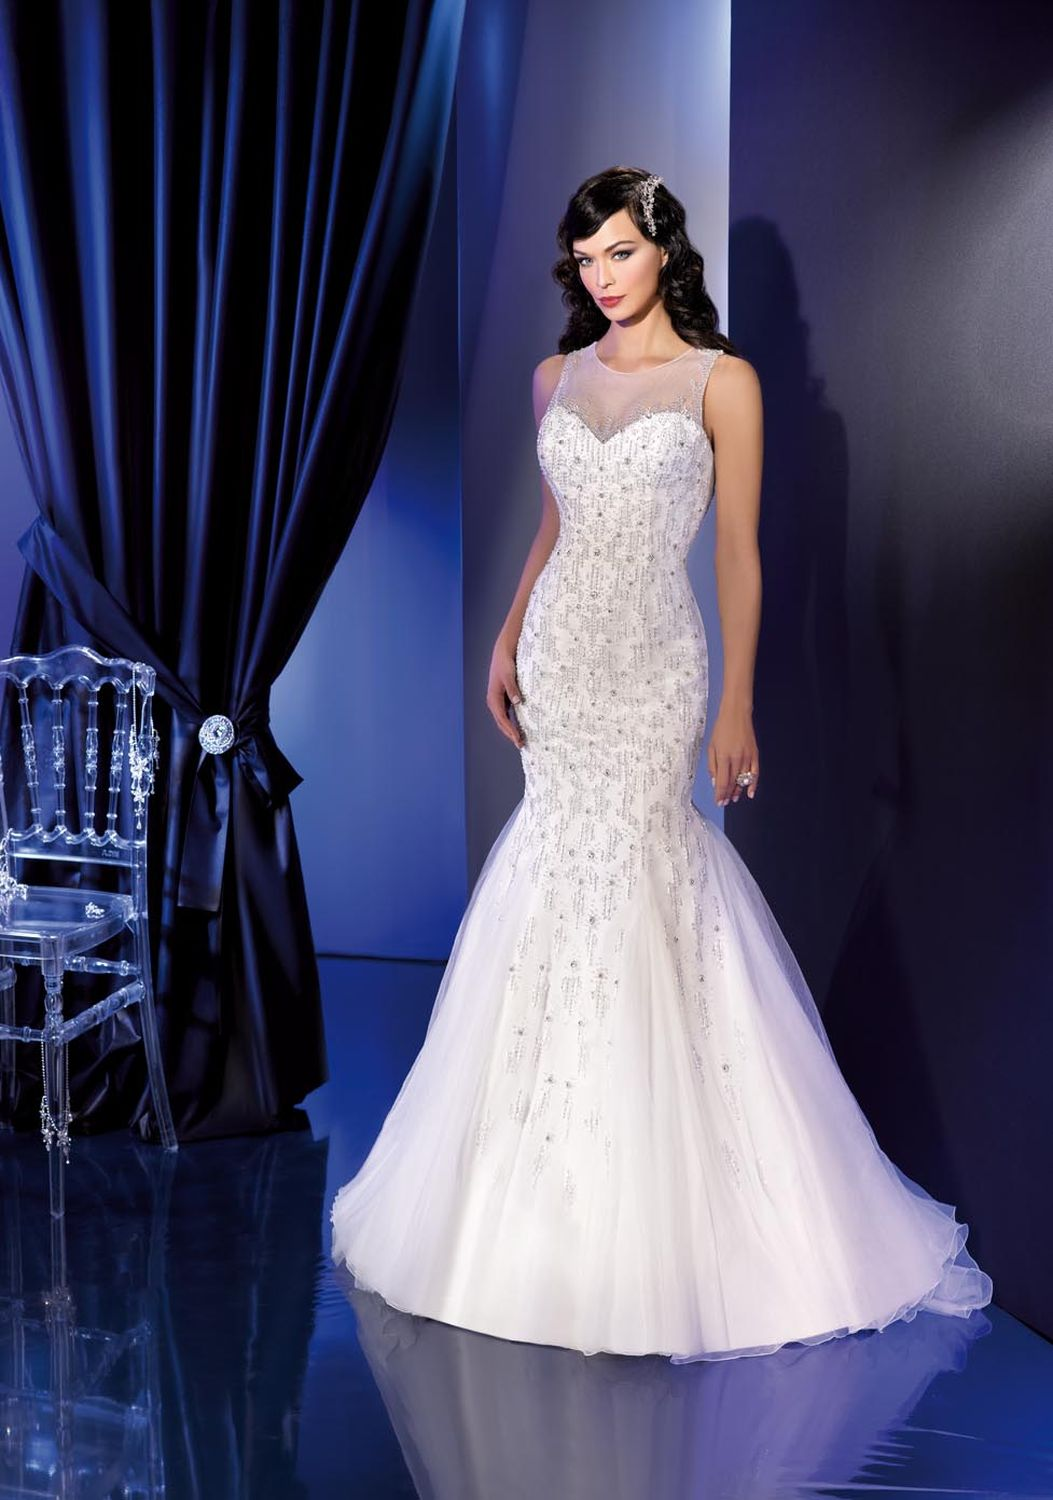 Kelly Star collection 2016 - Mariage.com